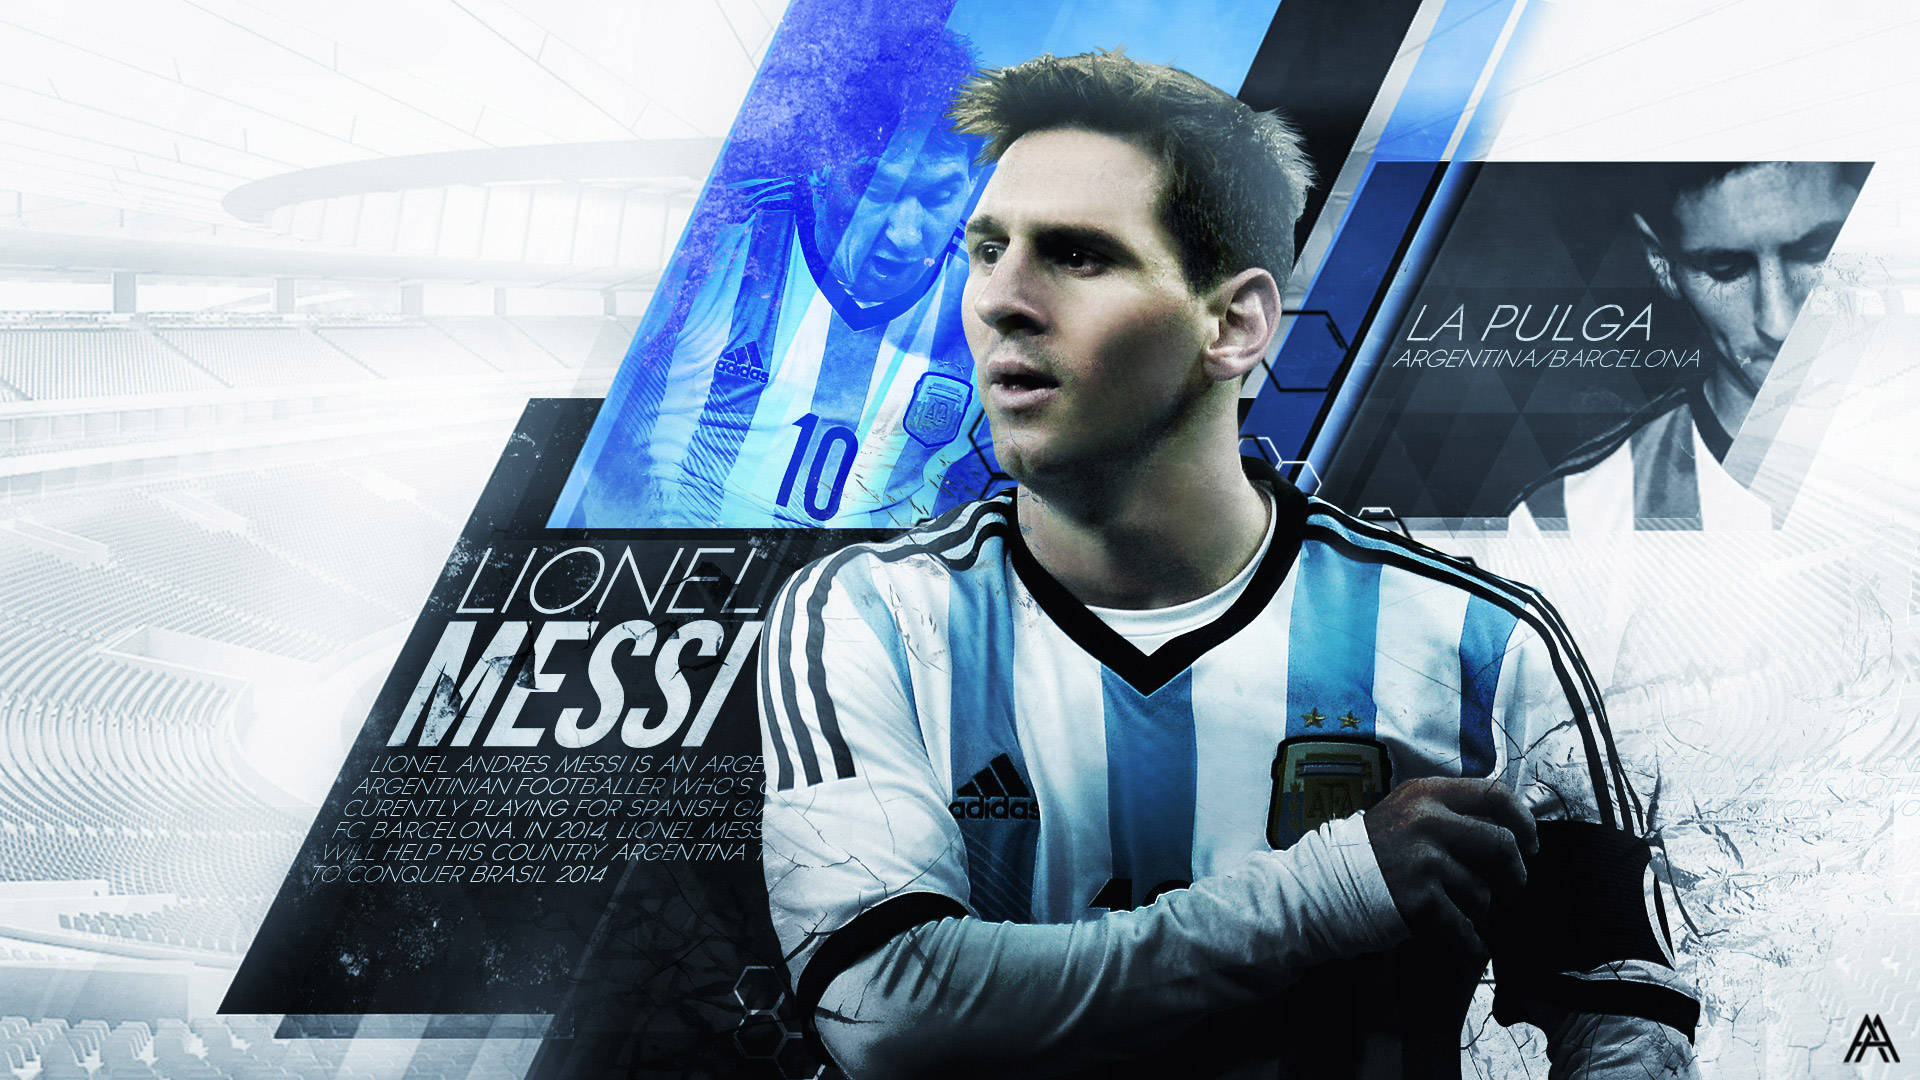 Messi Desktop Background Download 1920x1080